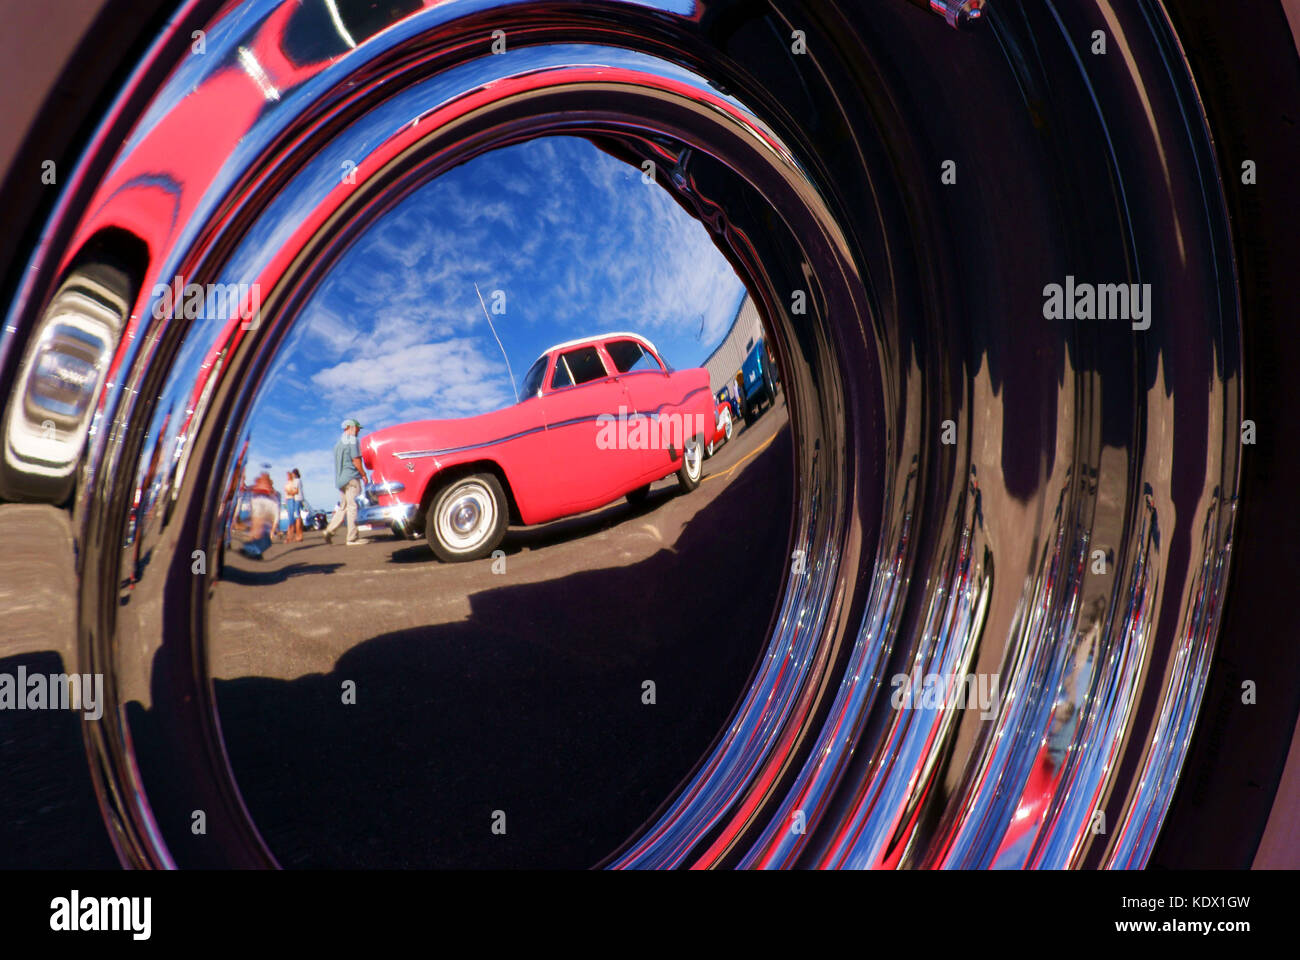 pink car reflection in hubcap stock image